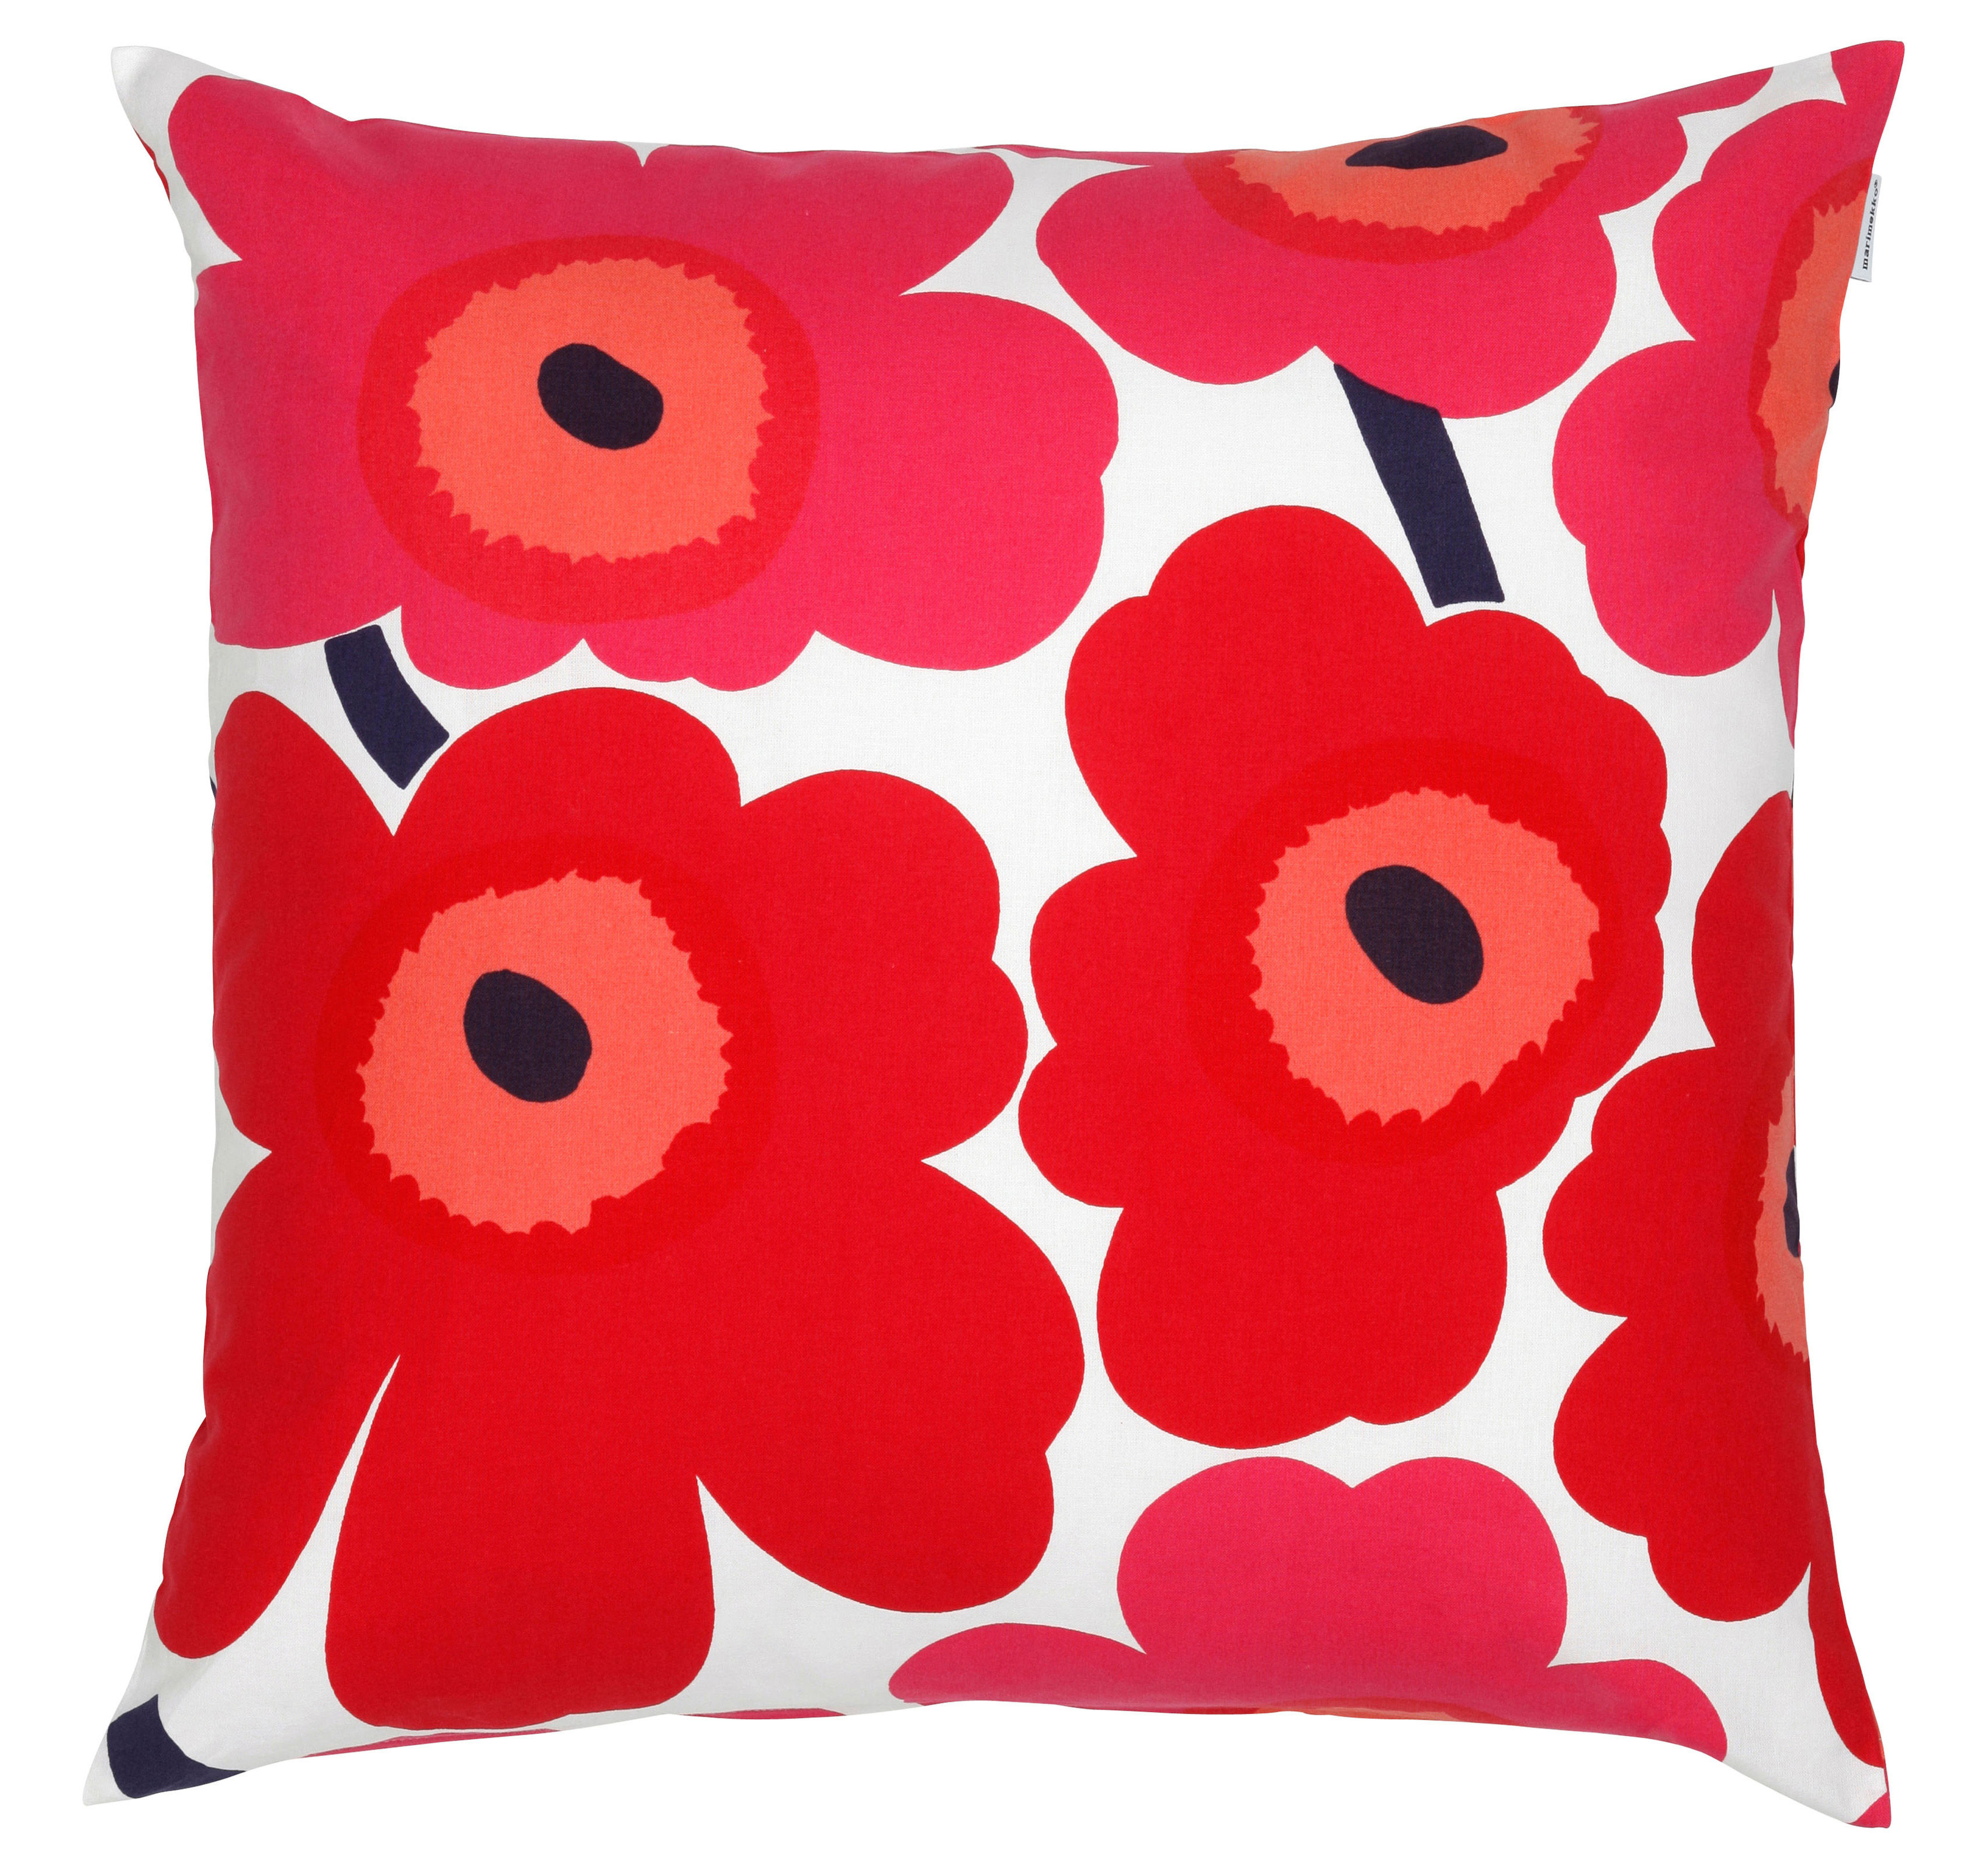 Pieni unikko cushion 50 x 50 cm pieni unikko red for Housse de coussin 55x55